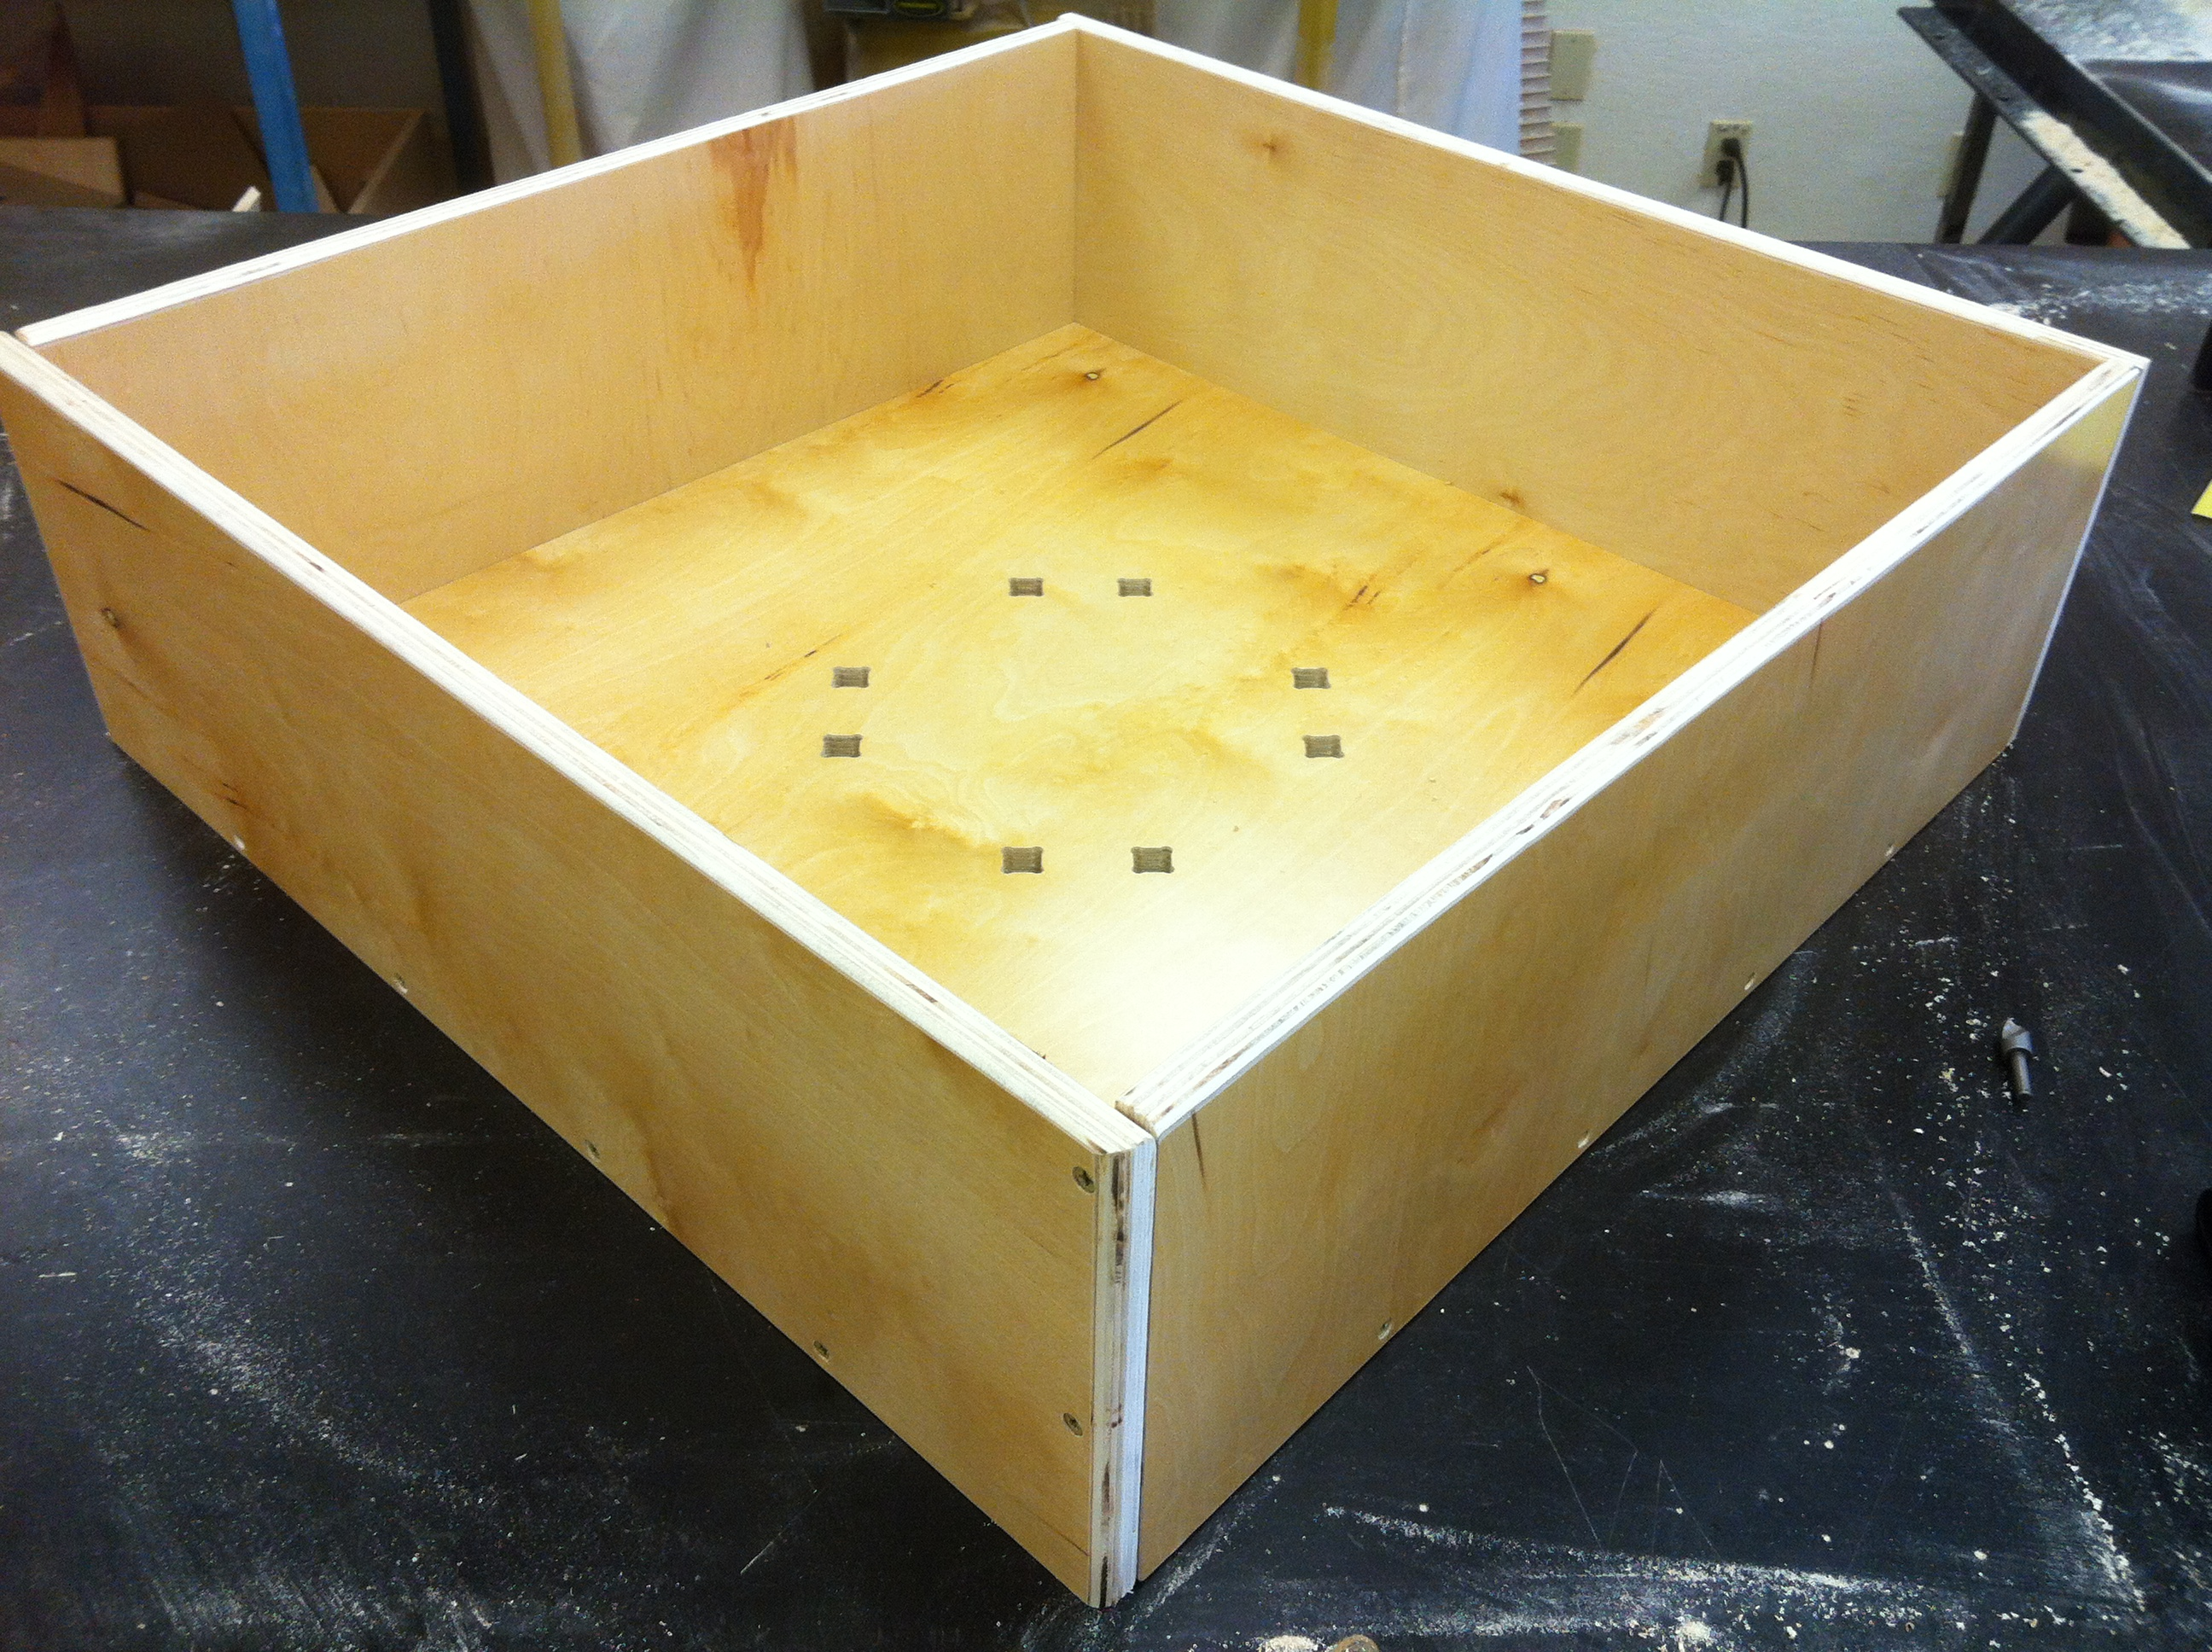 Picture of Assembly of the Box